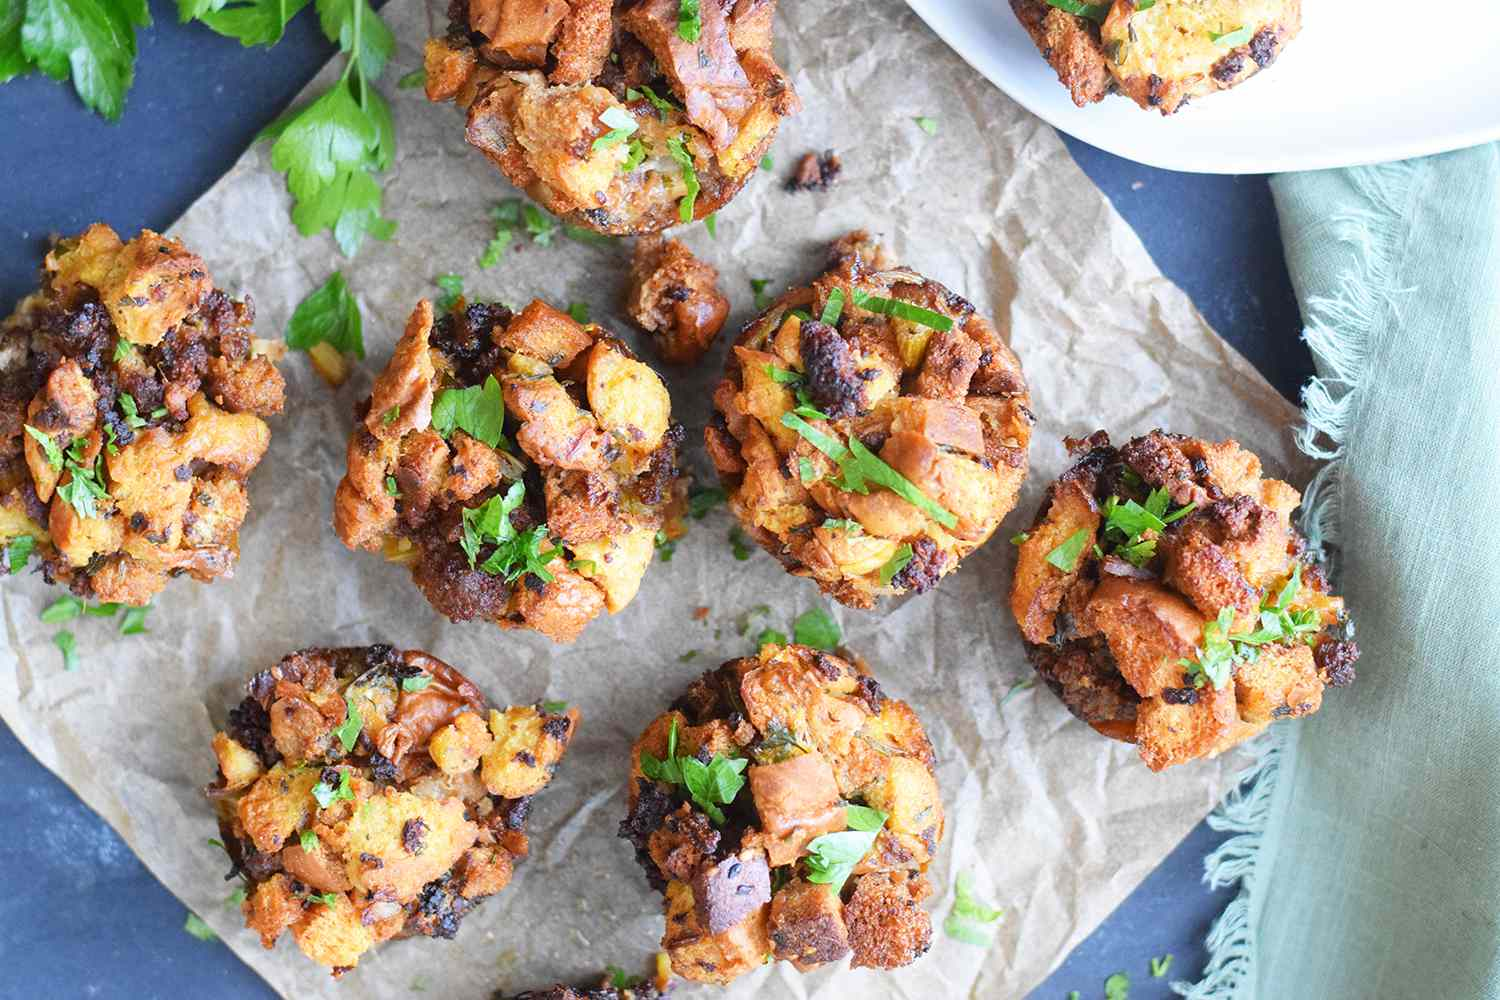 Baked stuffing muffins on parchment paper